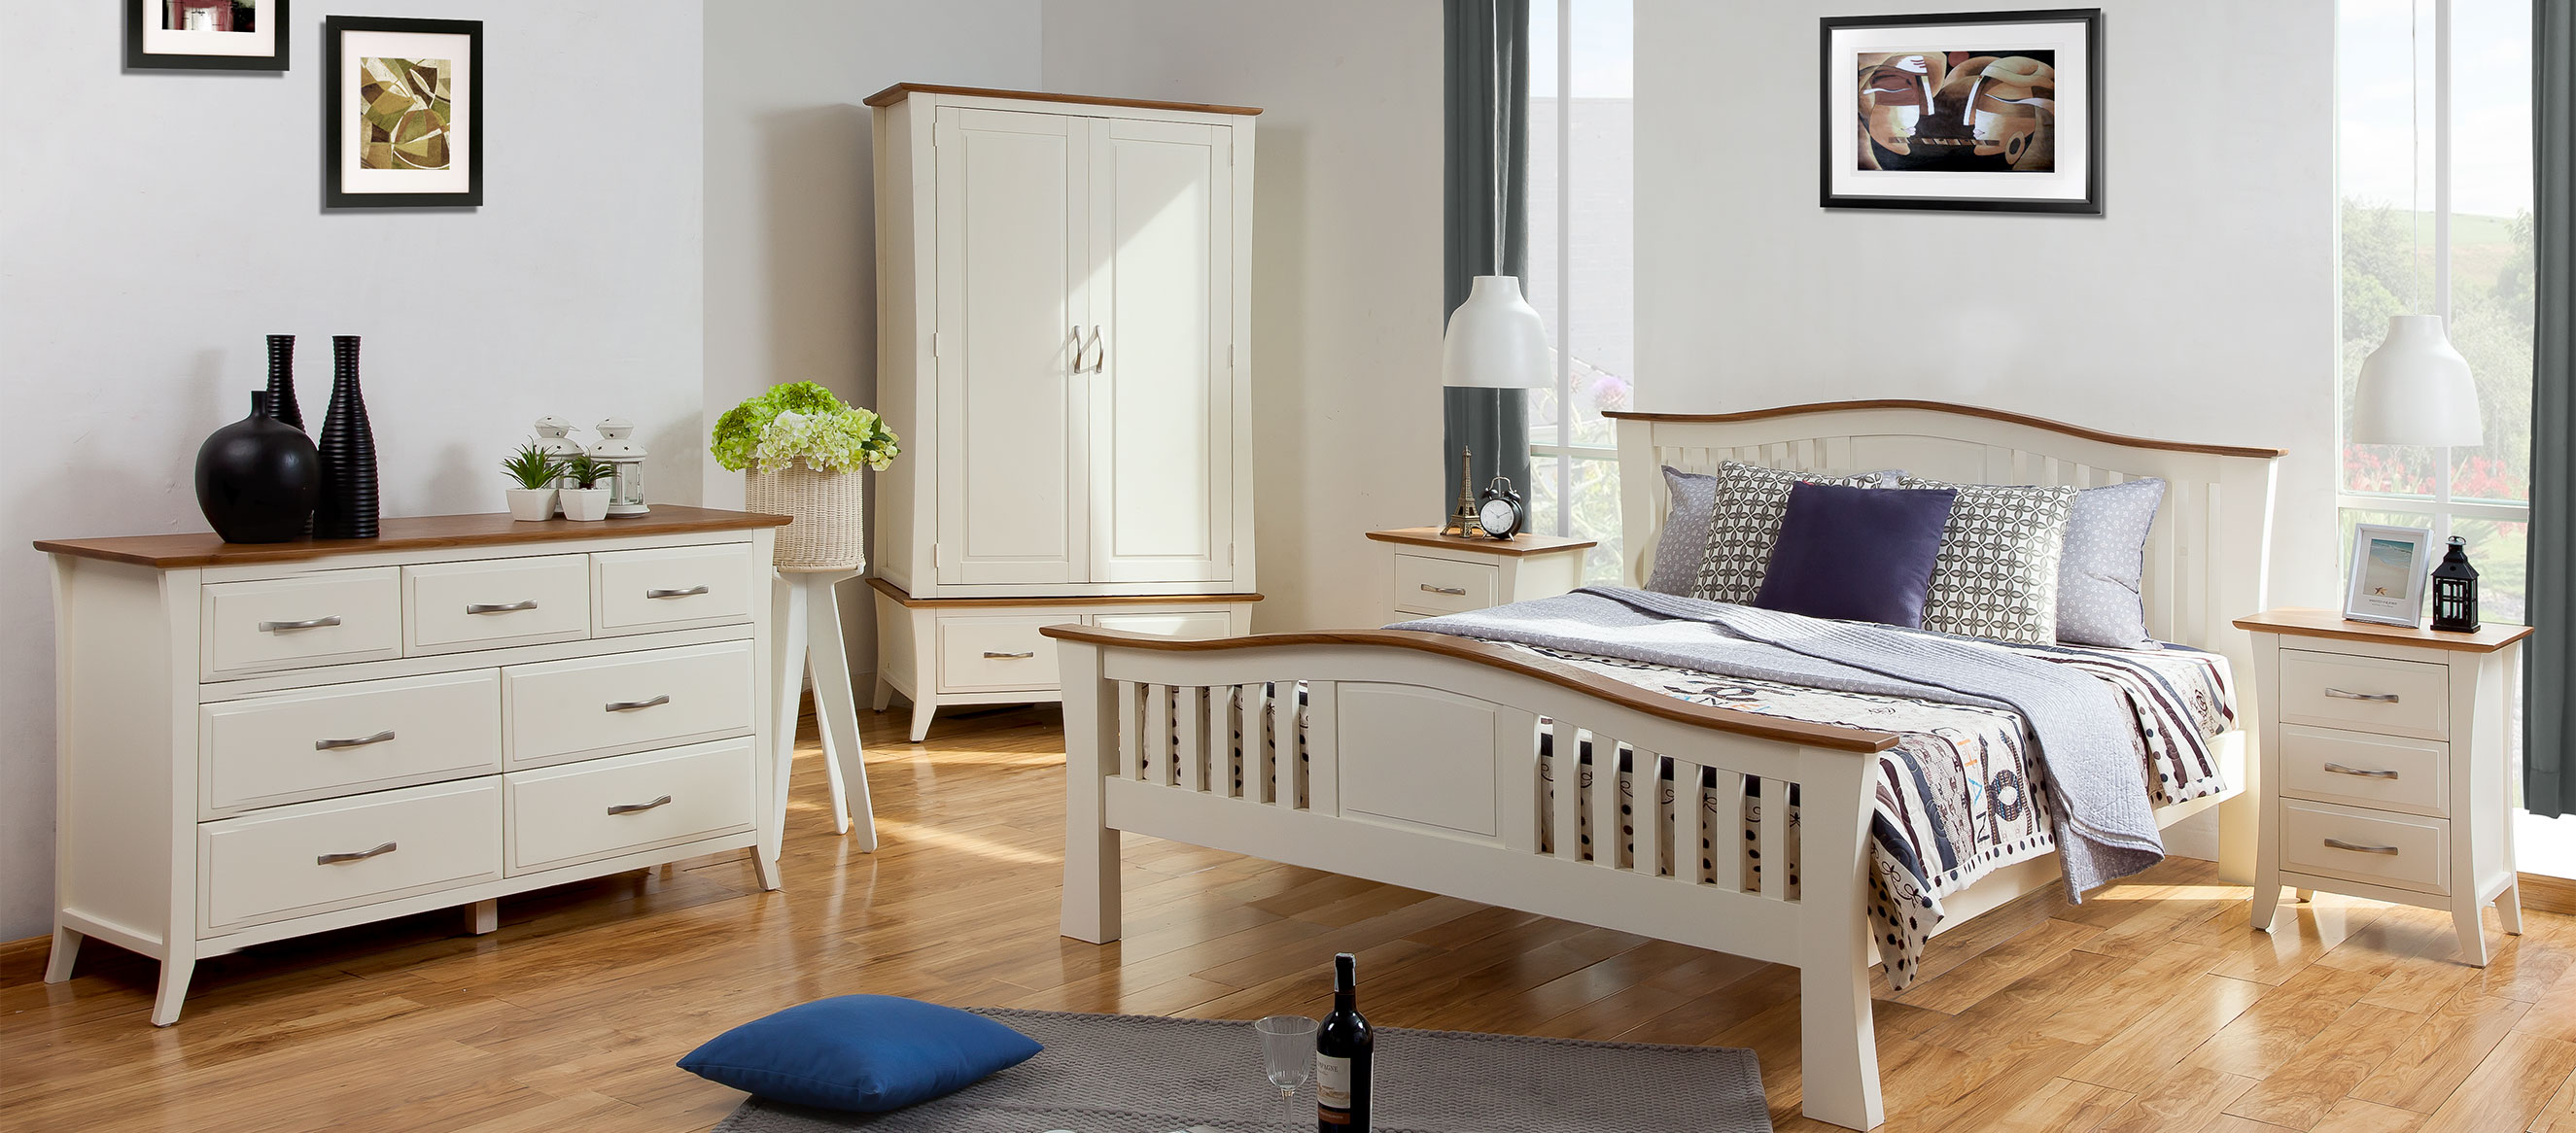 Samara collection Bedroom furniture